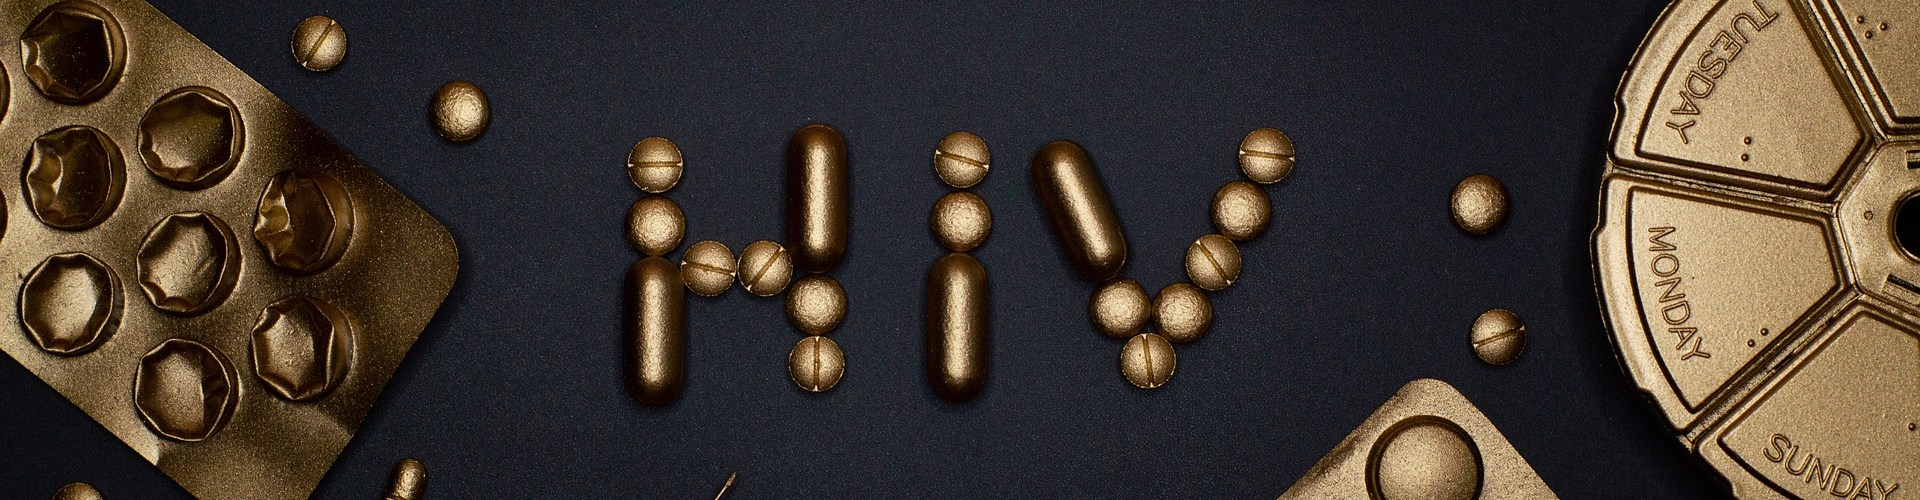 gold pills used to spell out HIV